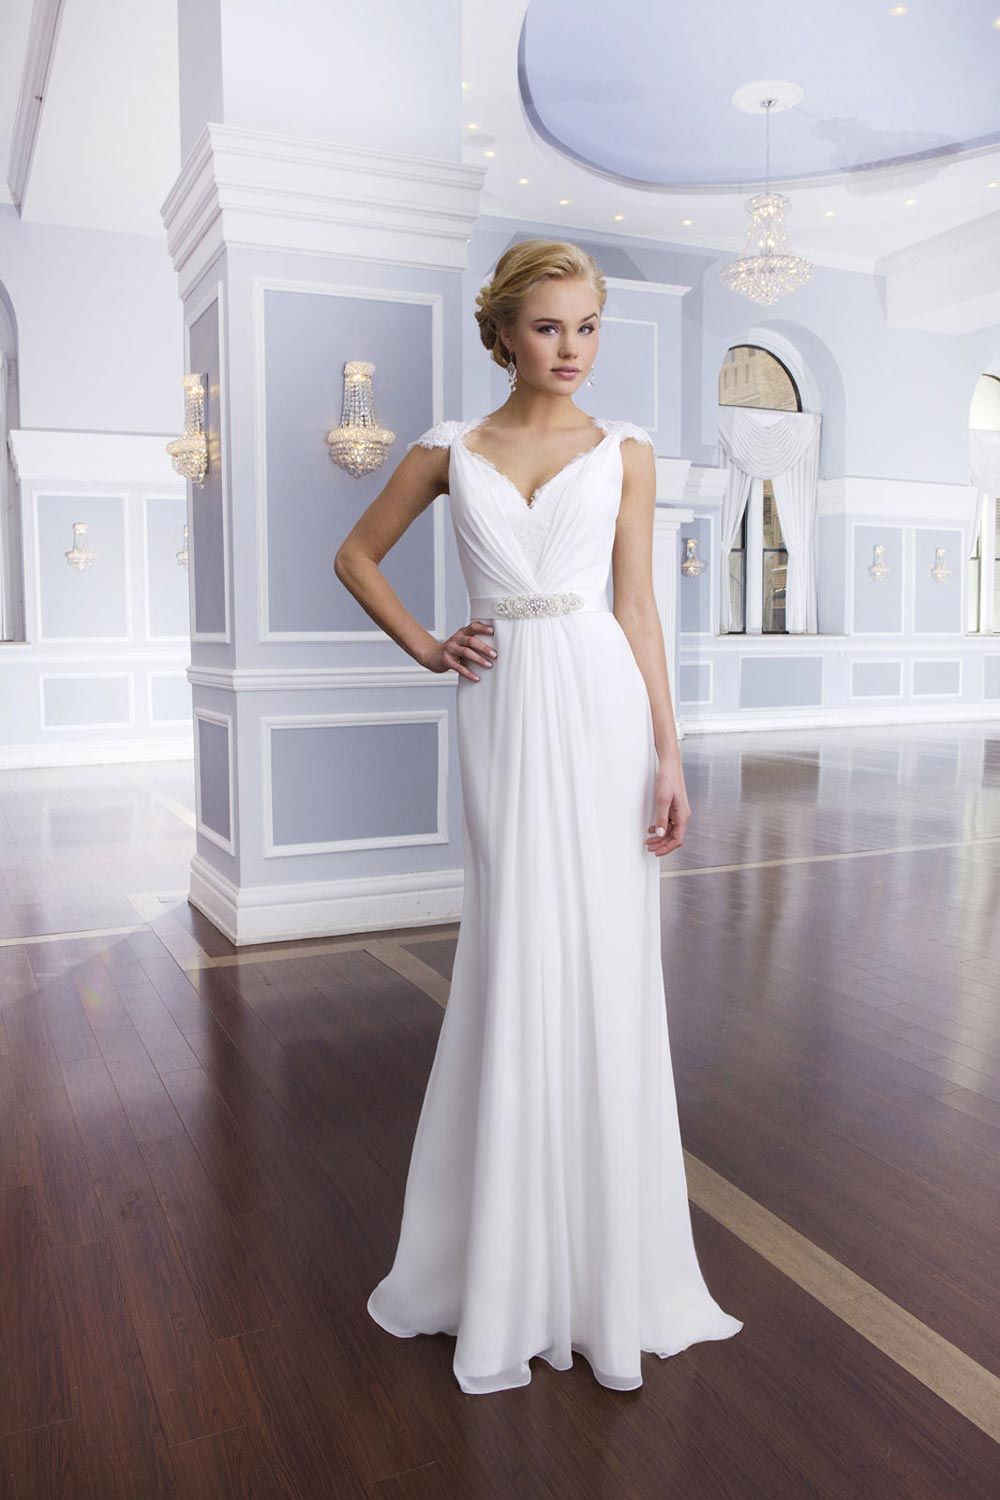 100+ Grecian Inspired Wedding Dresses - Wedding Dresses for Guests ...